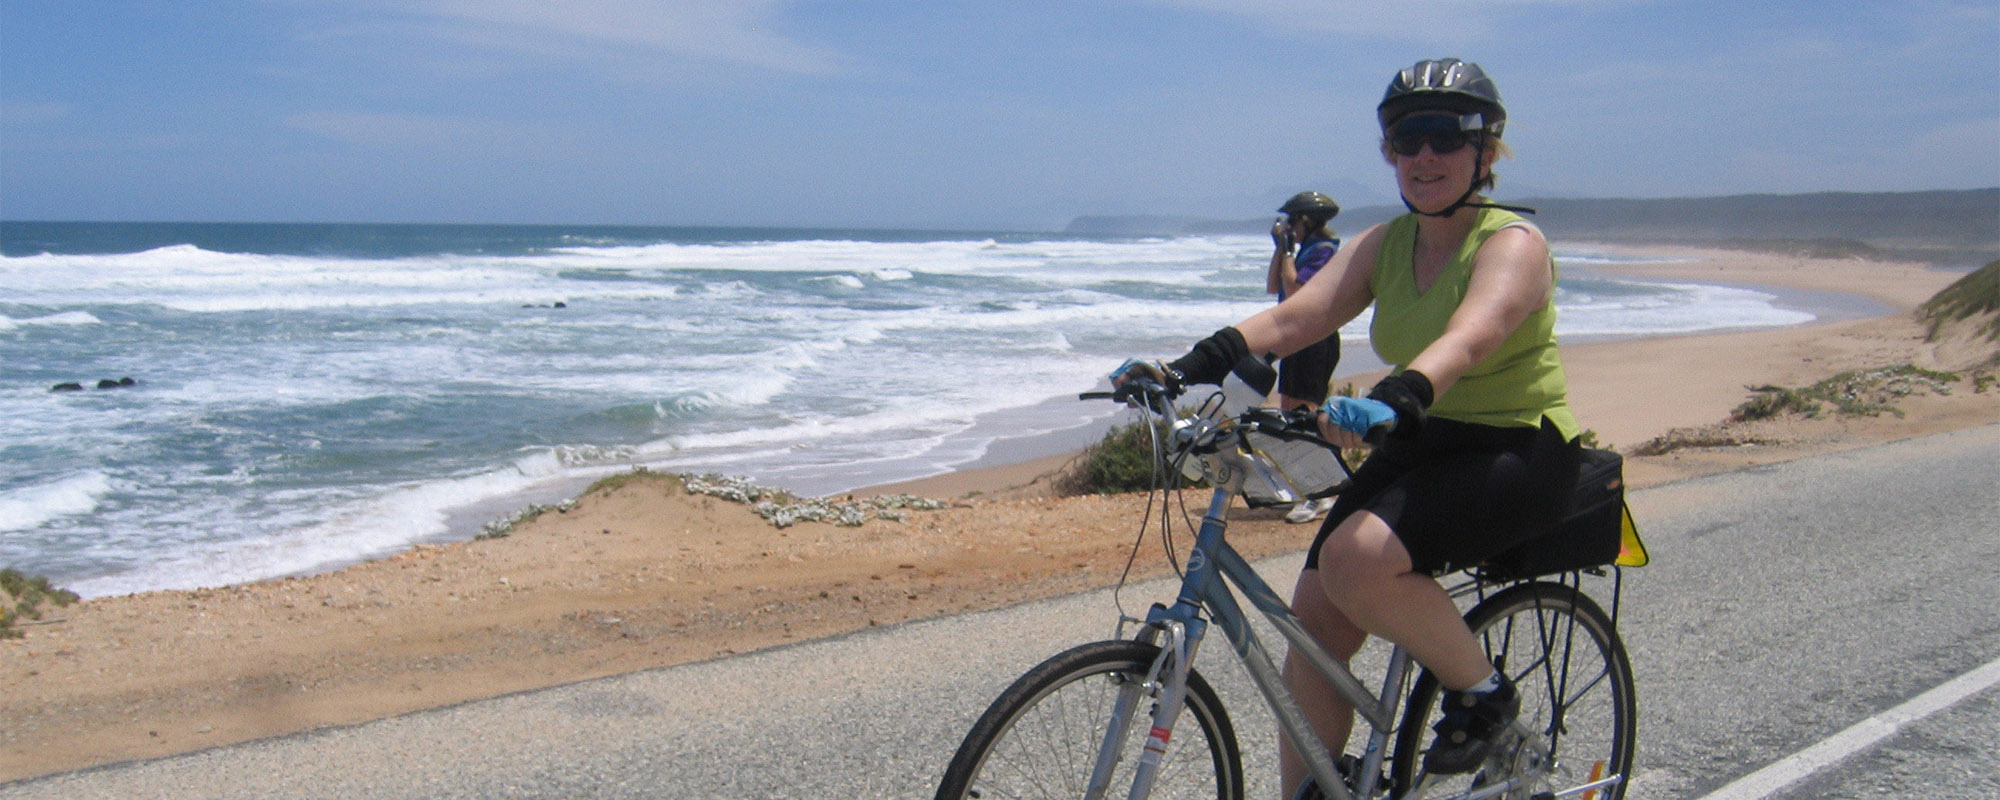 cape point cycling (2)-001.jpg